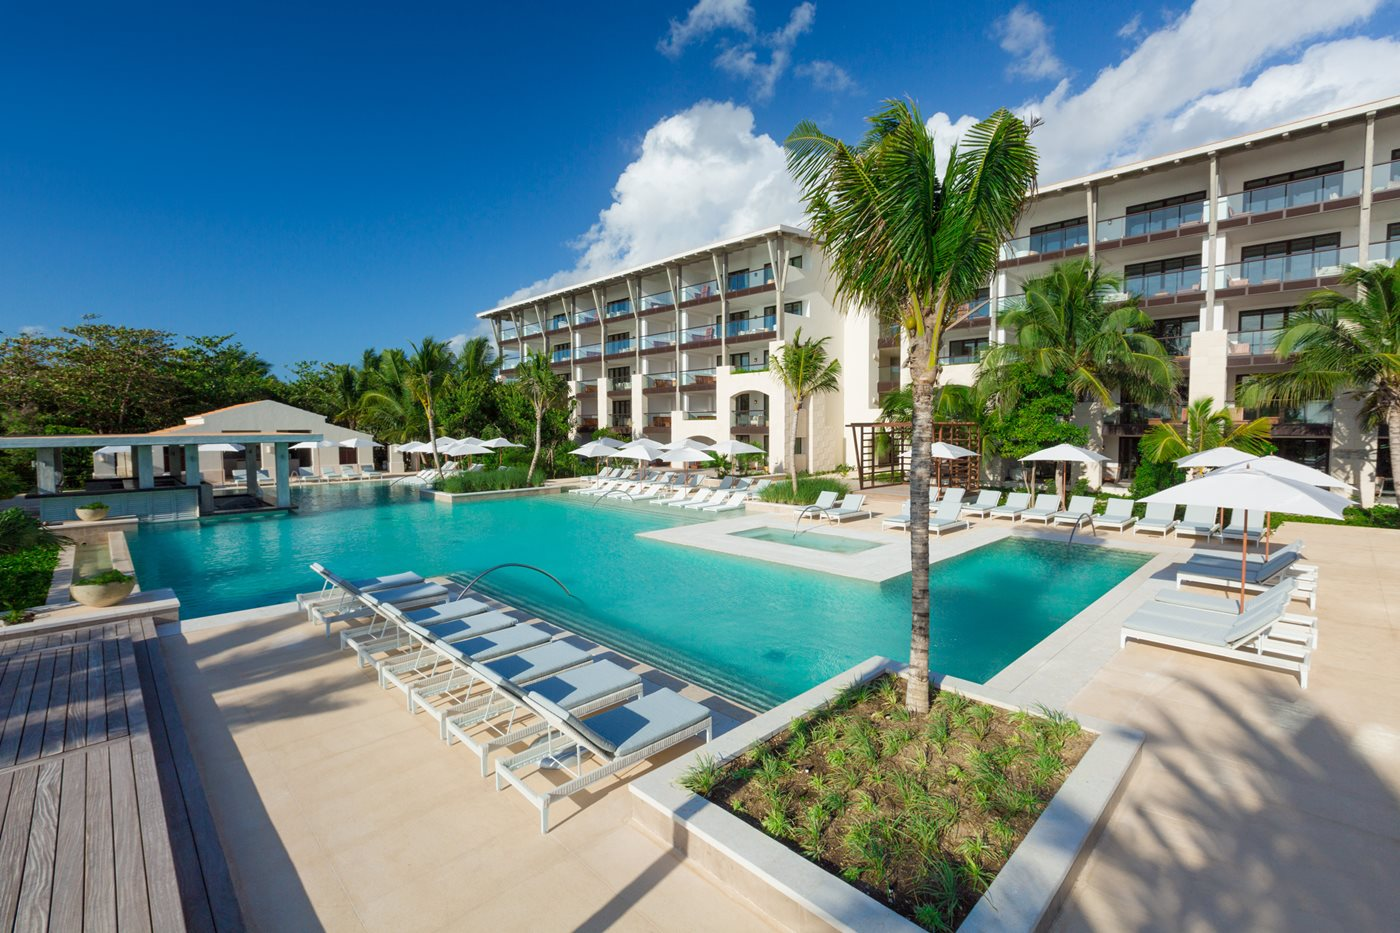 RIV-Unico-Hotel-Riviera-Maya-Pool-Escondida-003